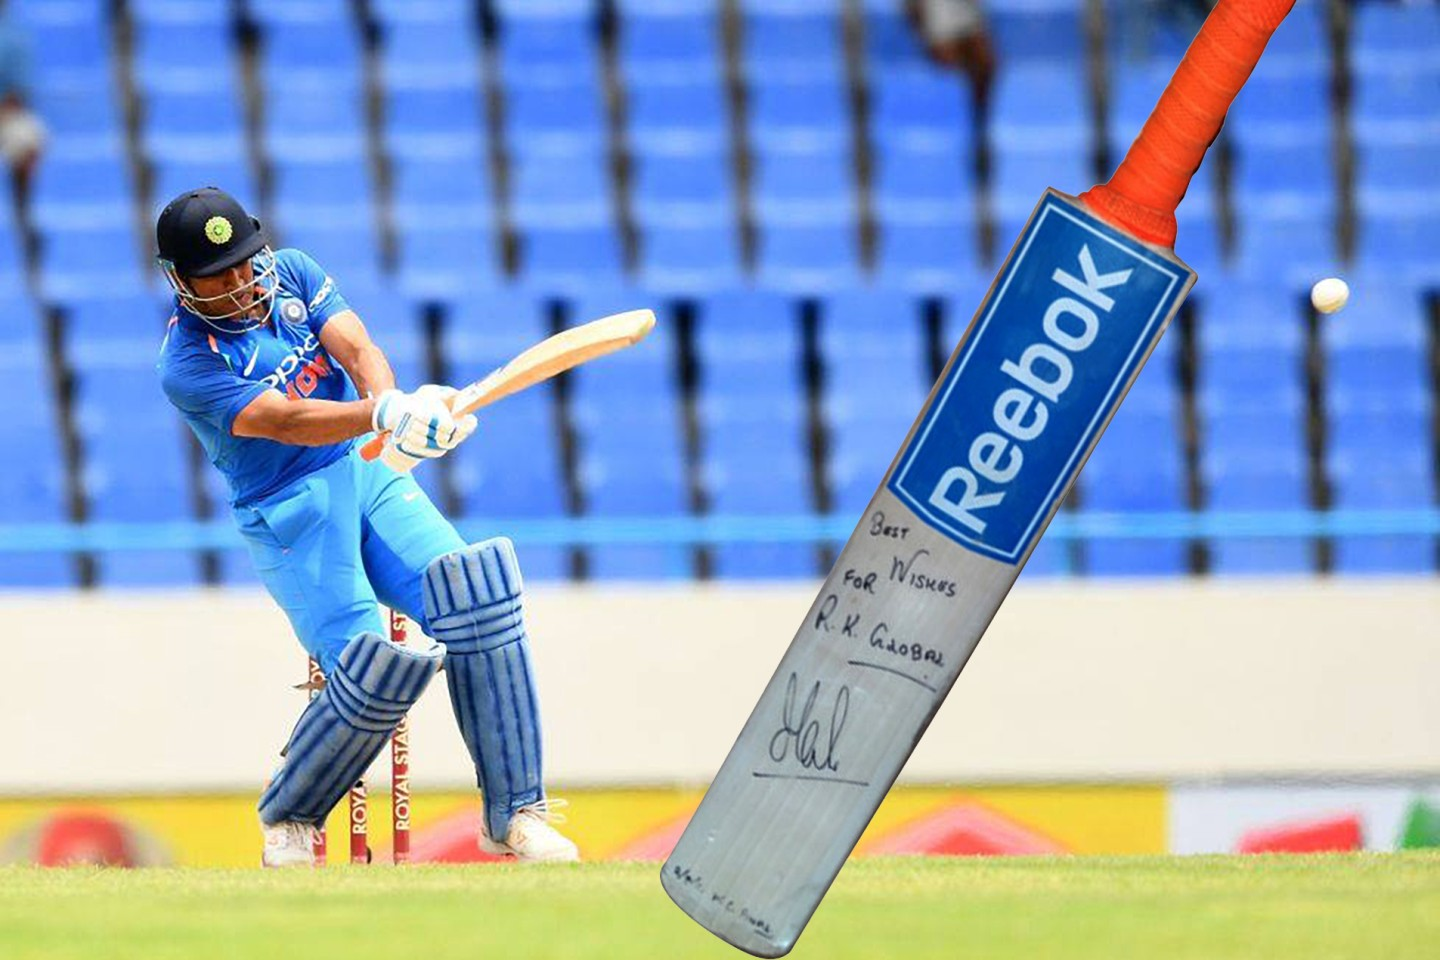 This is the bat with which Mahendra Singh Dhoni won the World Cup for India in 2011, striking 91 runs off 79 balls and lofting the final ball of the match into the crowd. The streets of Mumbai, New Delhi, Kolkata and Chennai were empty as the largest Indian television audience in history witnessed Dhoni's onslaught.